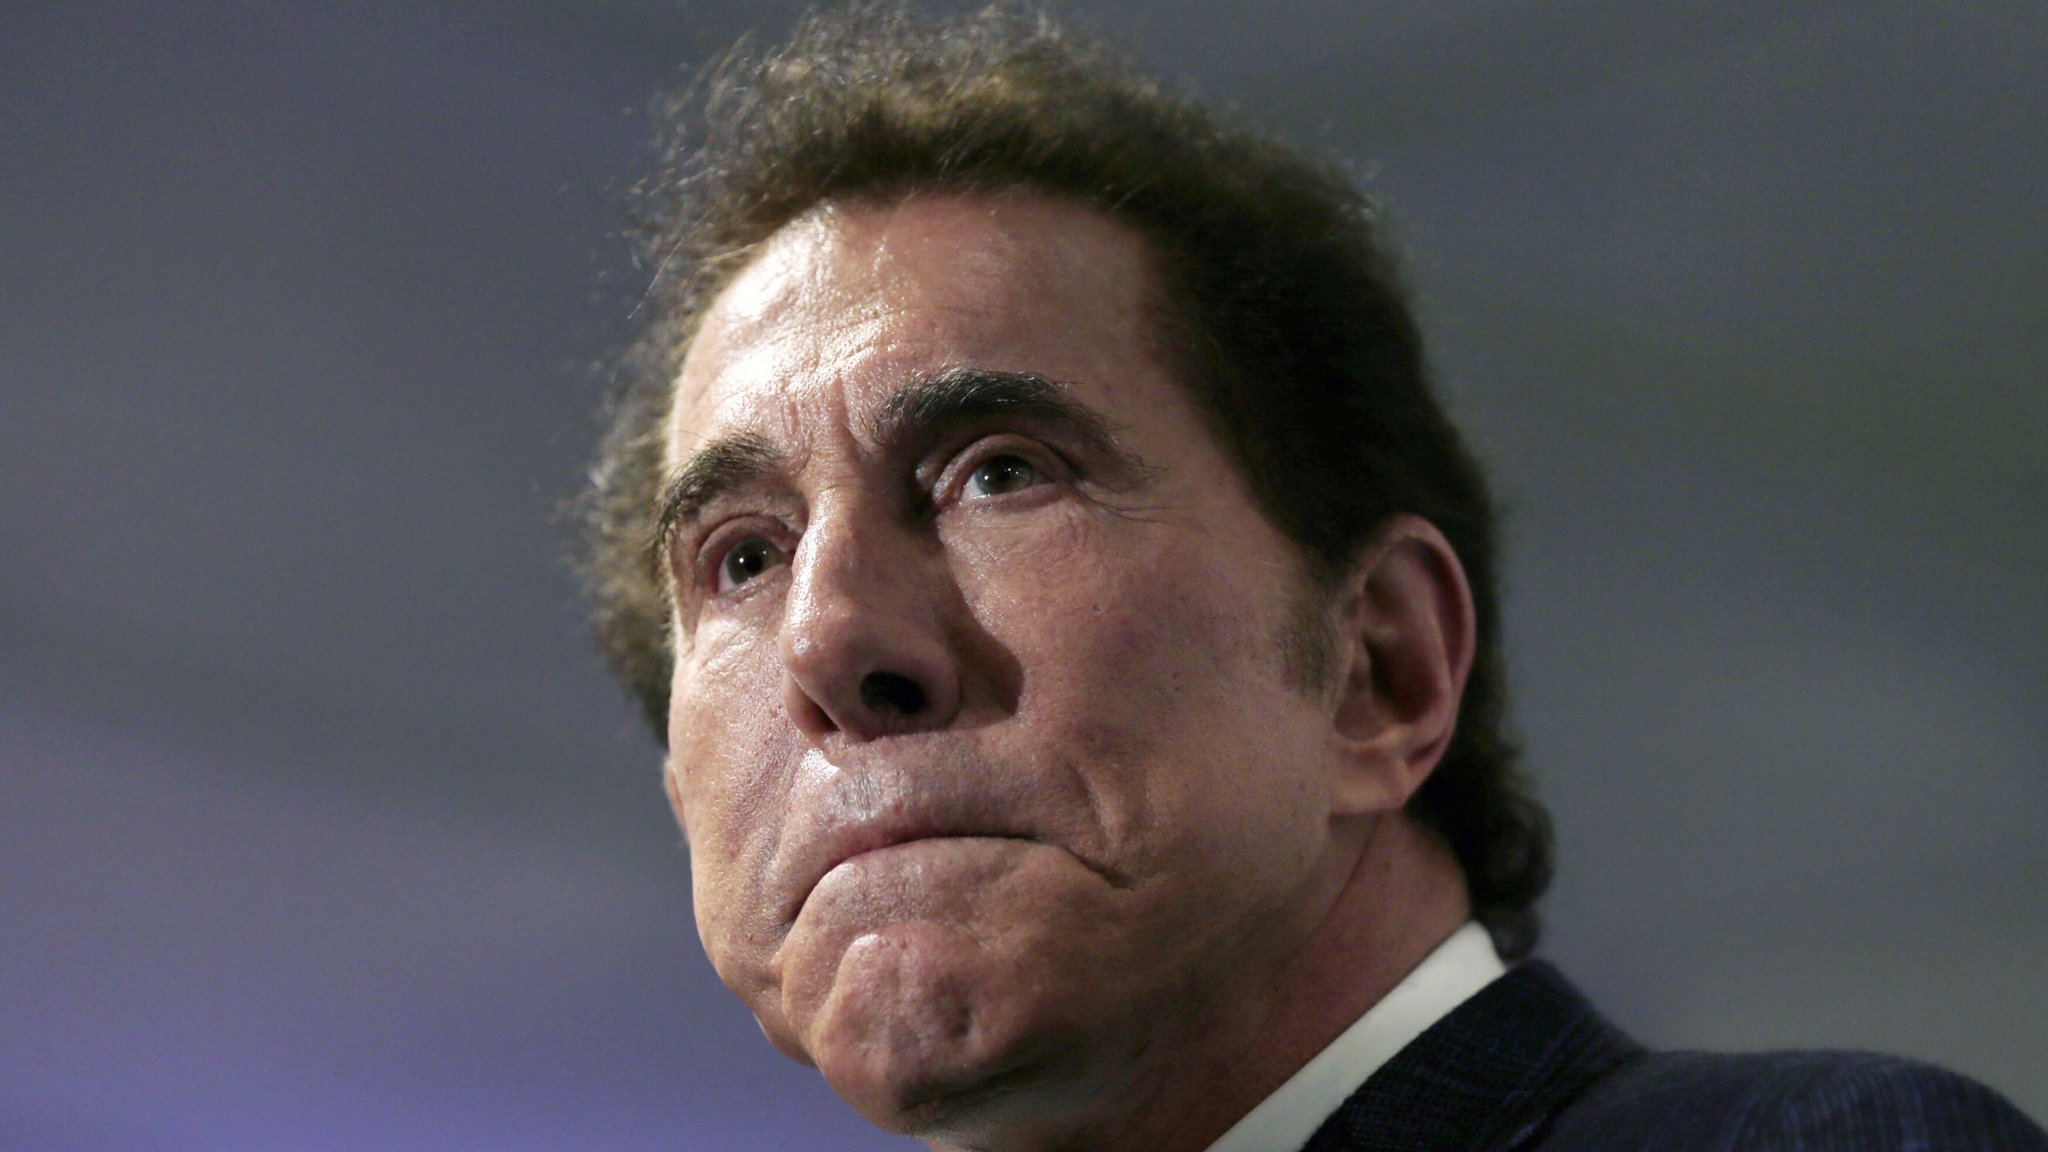 Casino mogul Wynn faces sexual harassment allegations